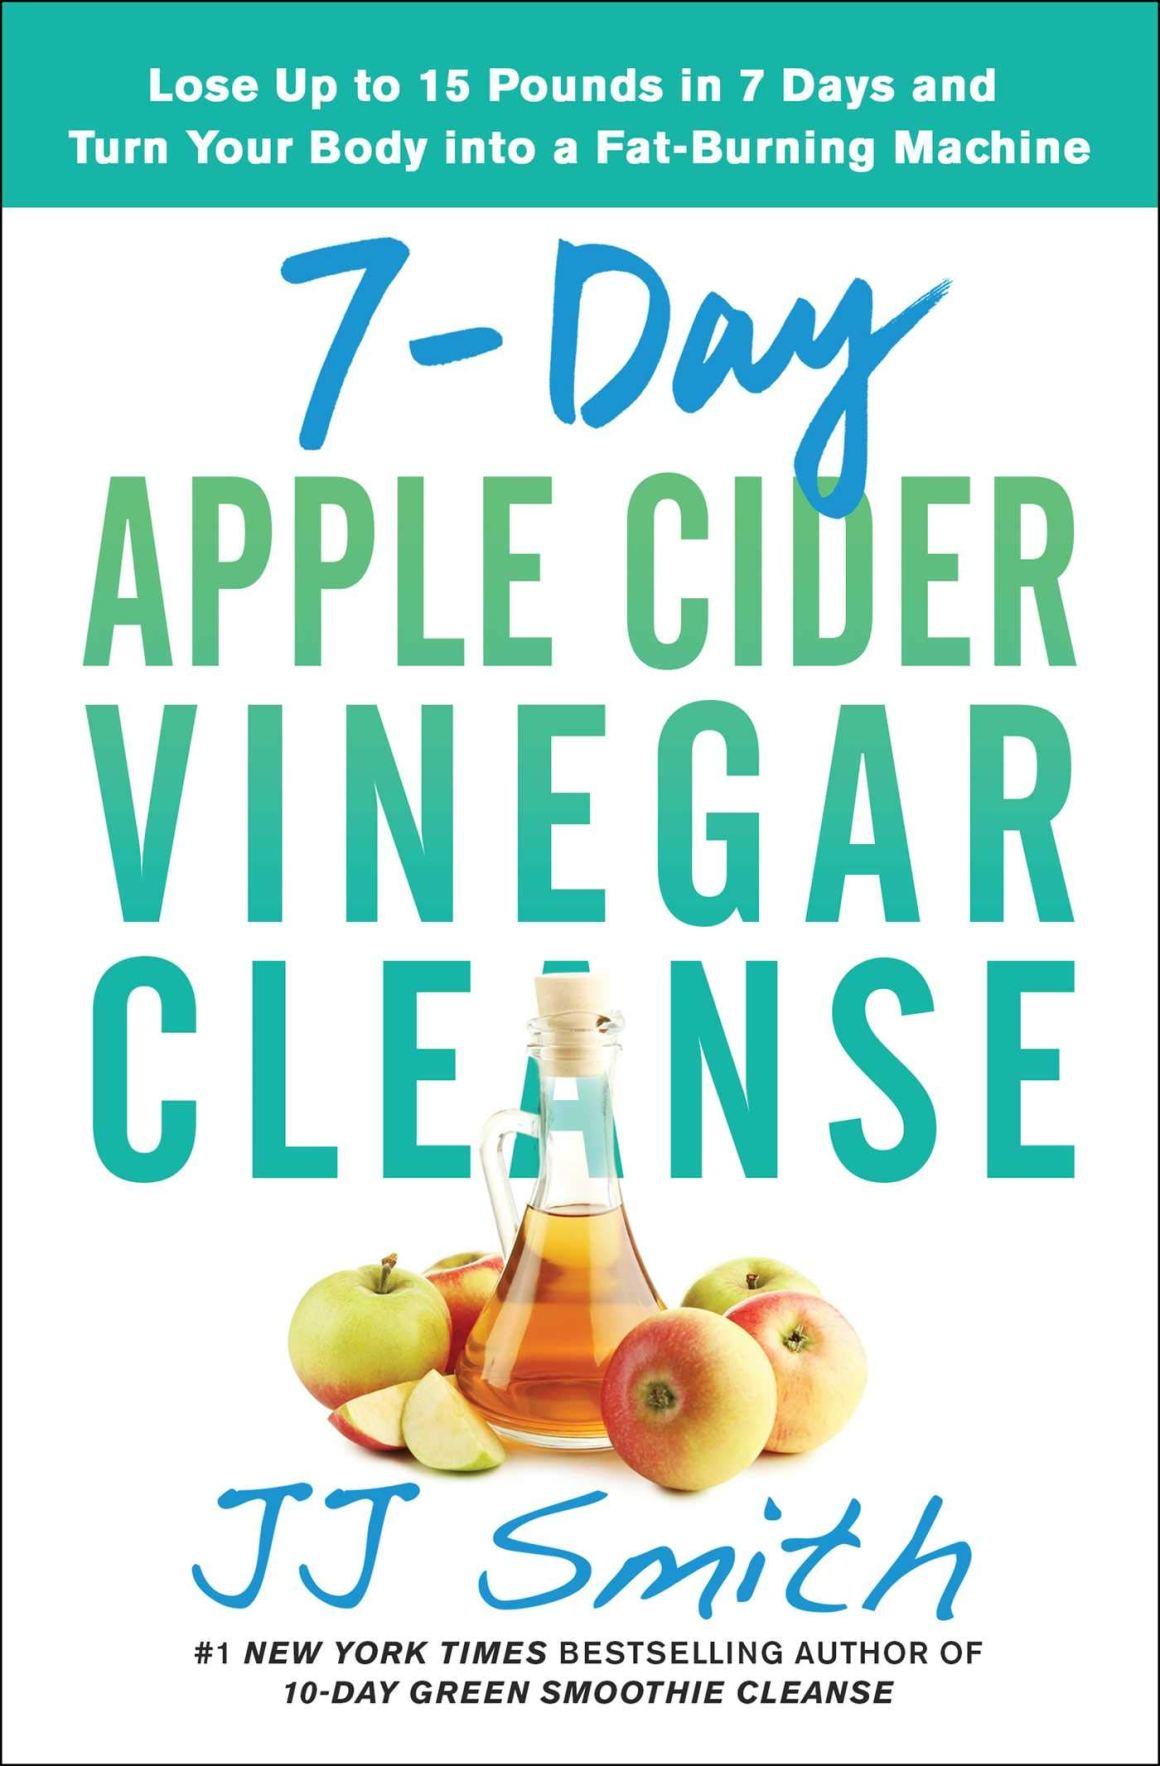 71Bck4jGNkL - 7-Day Apple Cider Vinegar Cleanse: Lose Up to 15 Pounds in 7 Days and Turn Your Body into a Fat-Burning Machine